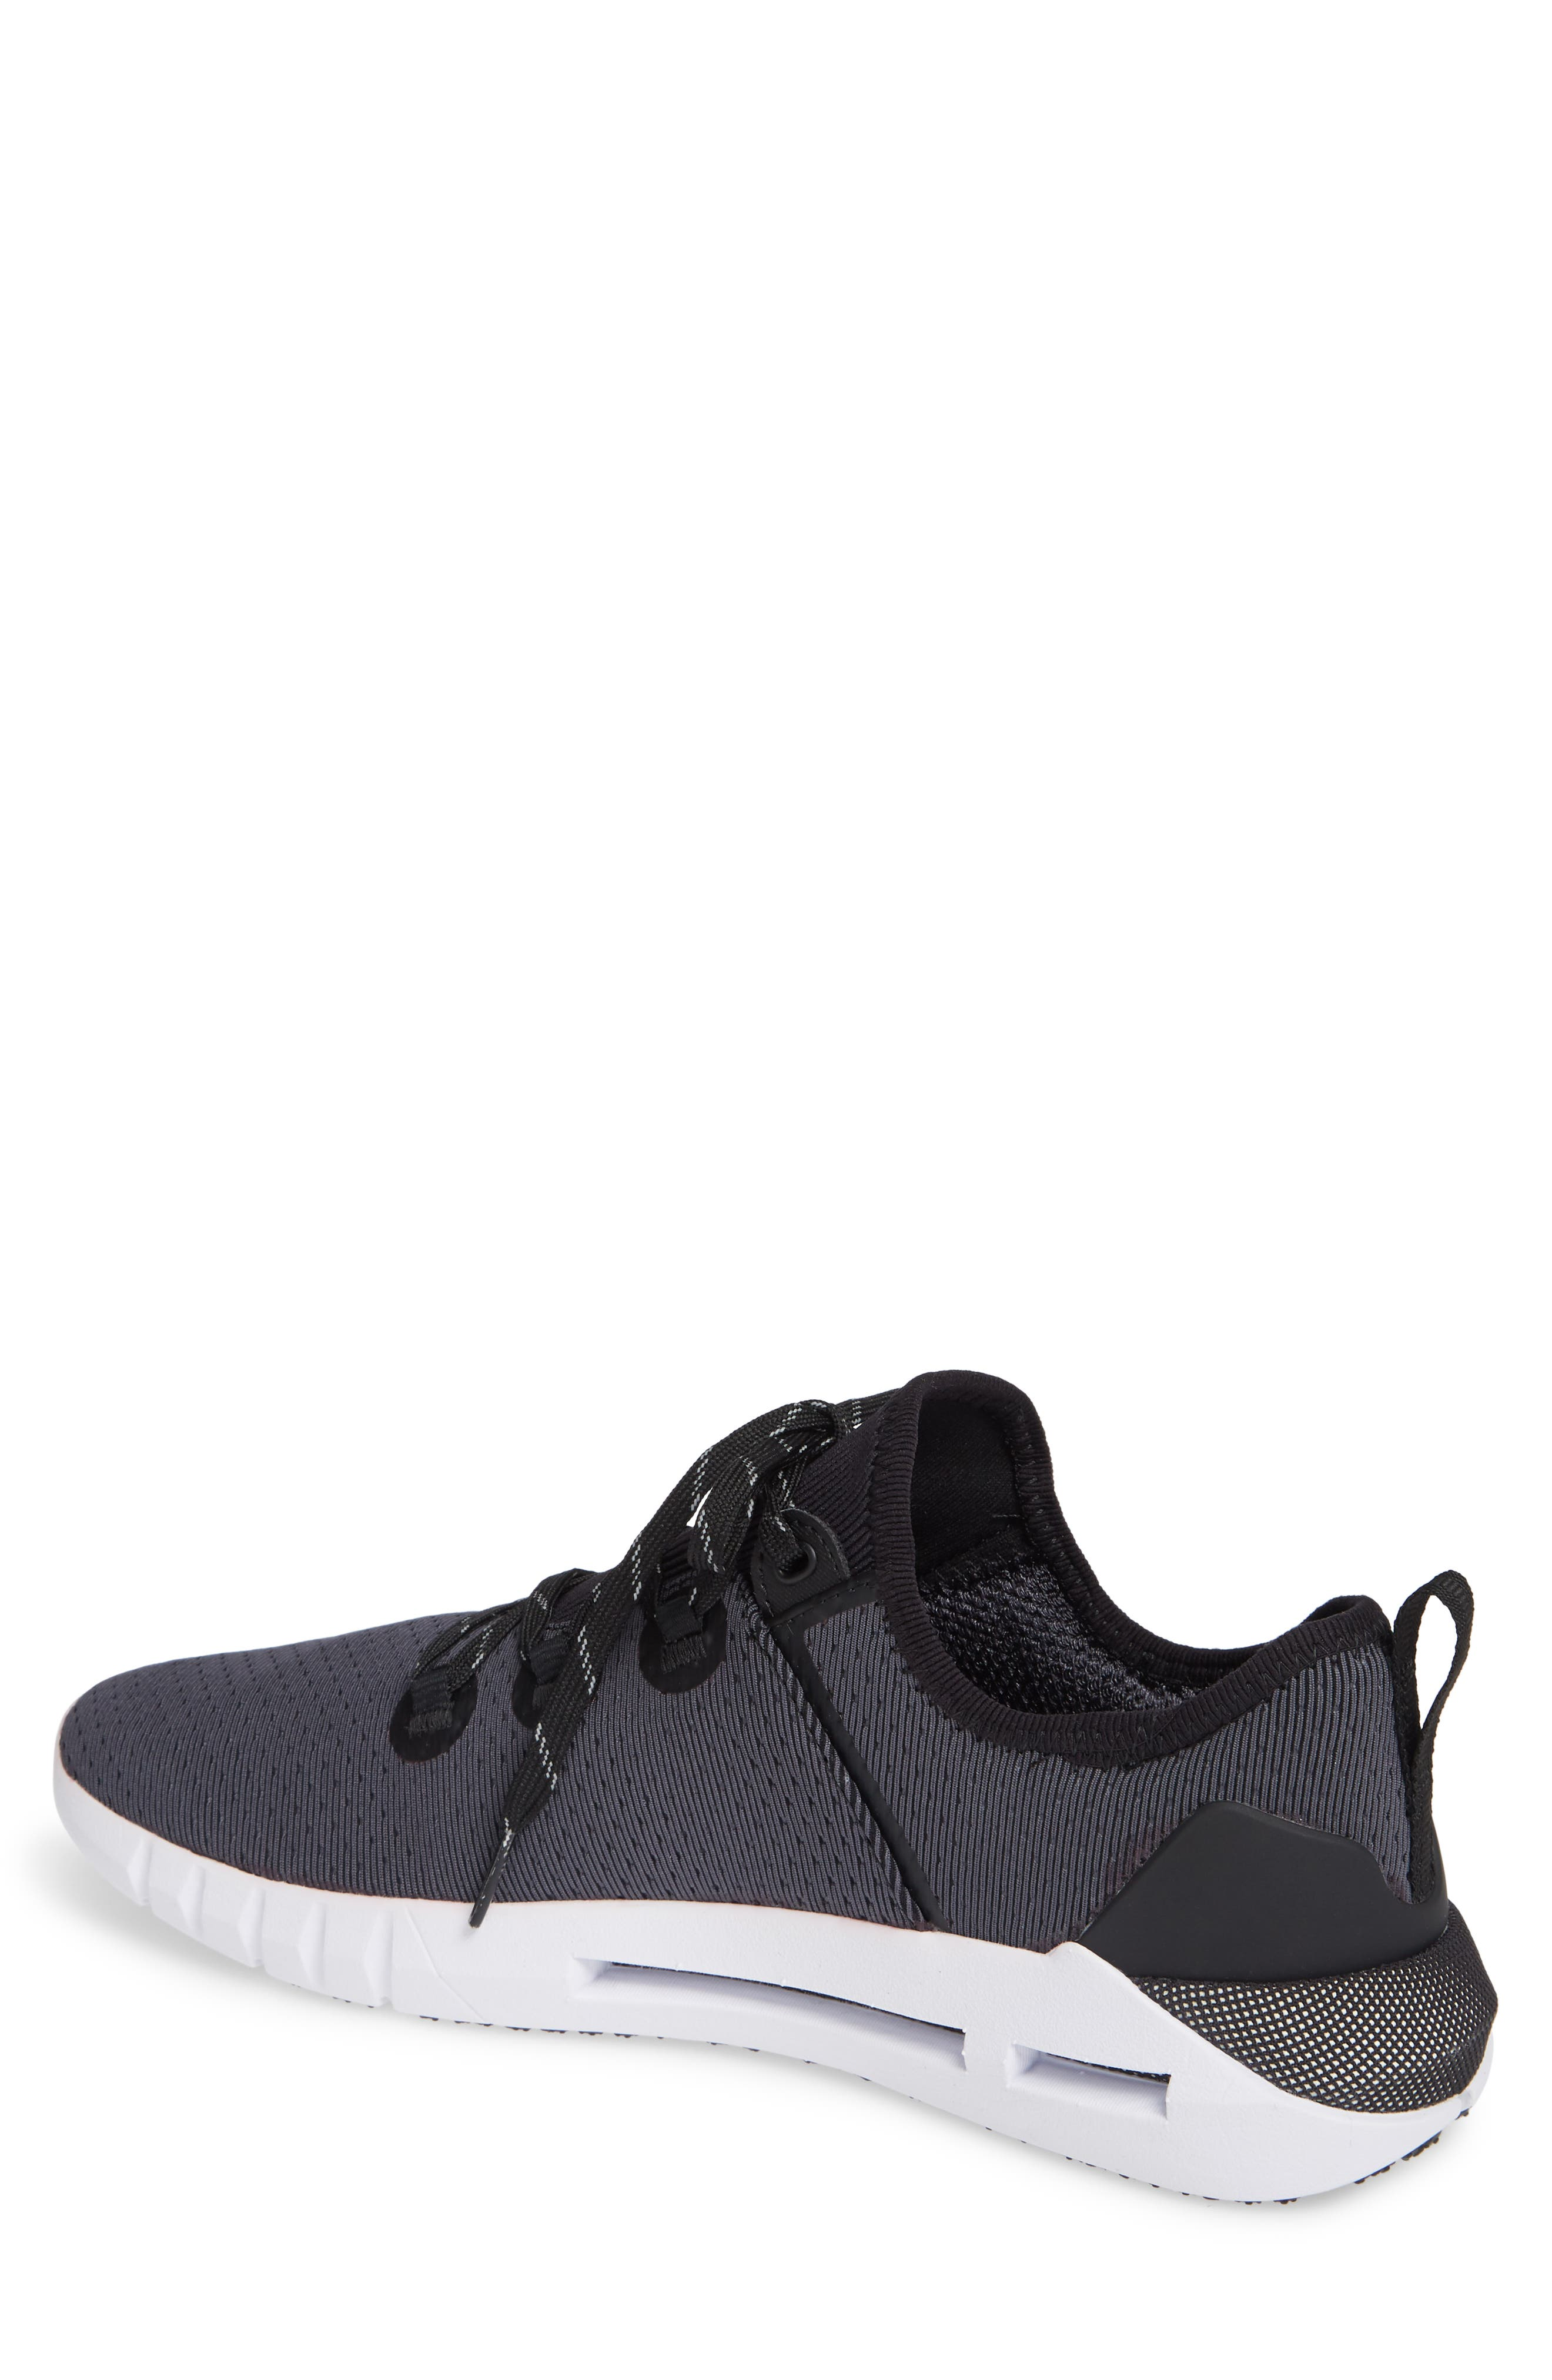 HOVR<sup>™</sup> SLK Running Shoe,                             Alternate thumbnail 2, color,                             BLACK/ WHITE / BLACK